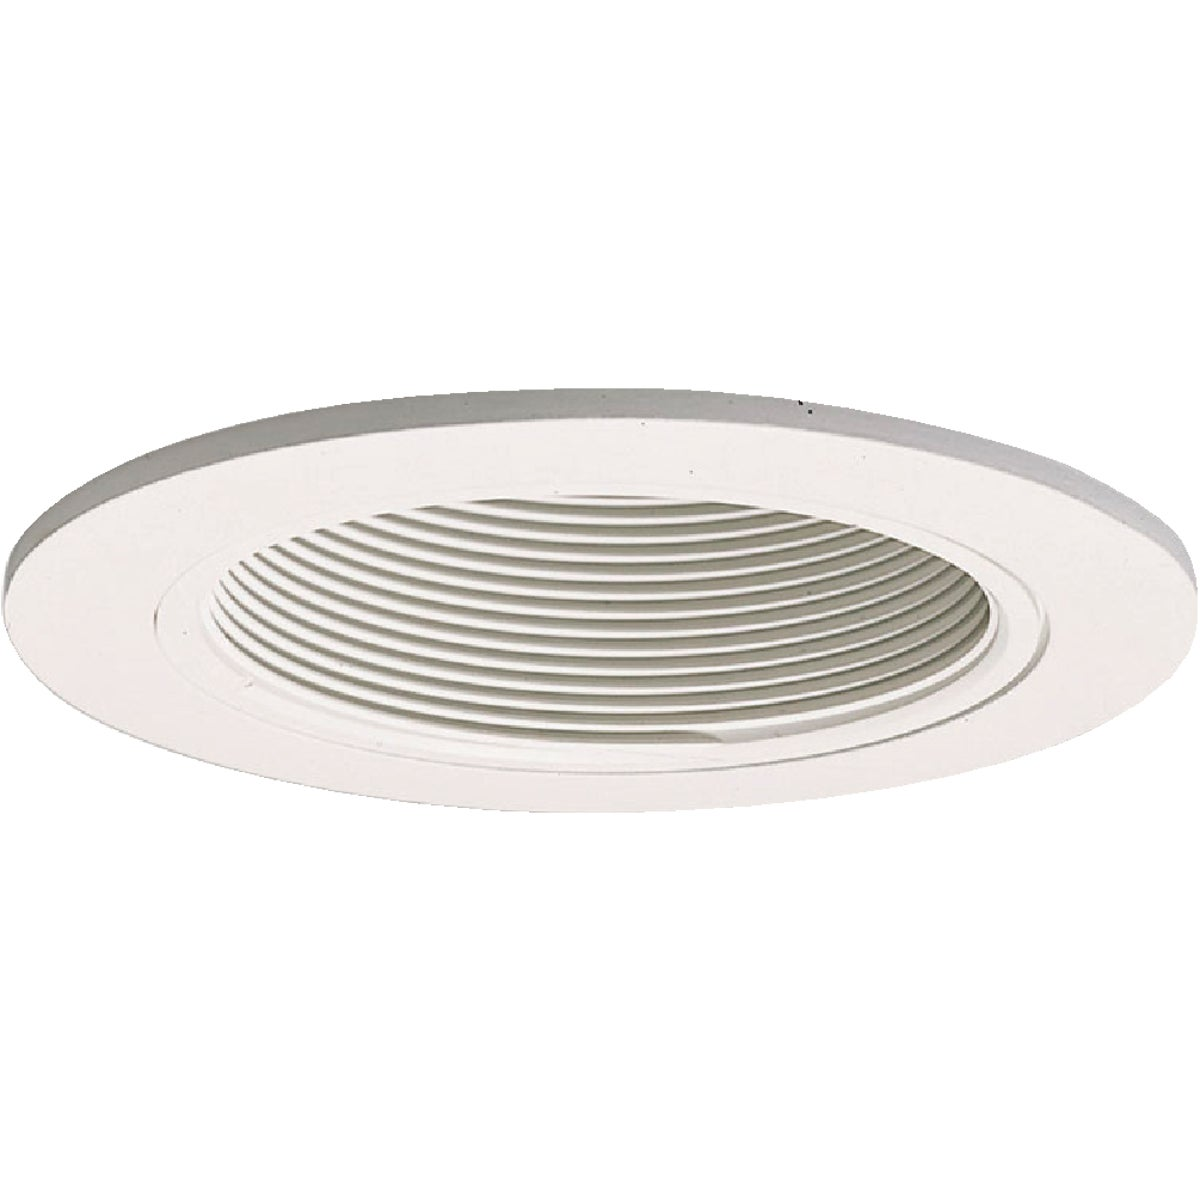 "4"" WHT/WHT TRIM BAFFLE - 993W by Cooper Lighting"